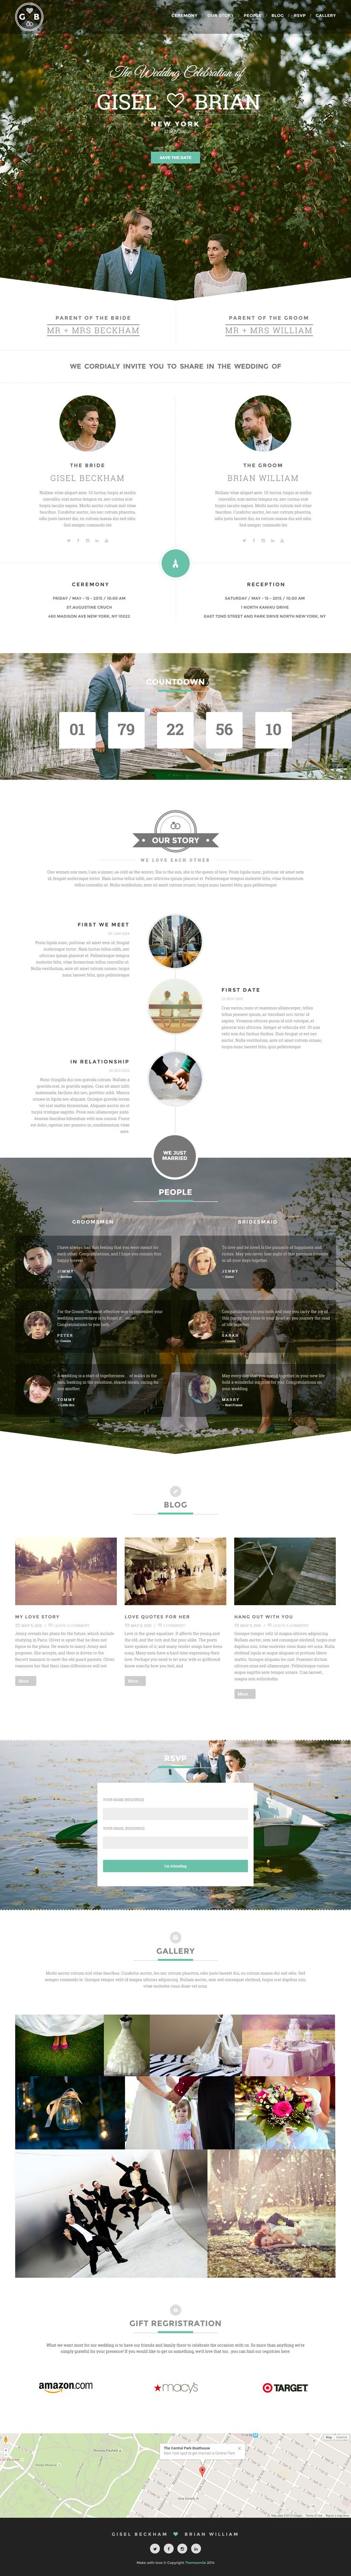 Ulemulem is Premium full Responsive Retina WordPress Wedding theme. Parallax Scrolling. One Page. Bootstrap 3. Google Map. #WP #Wedding #Bootstrap3 Test free demo at: http://www.responsivemiracle.com/cms/ulemulem-premium-responsive-wedding-wordpress-theme/